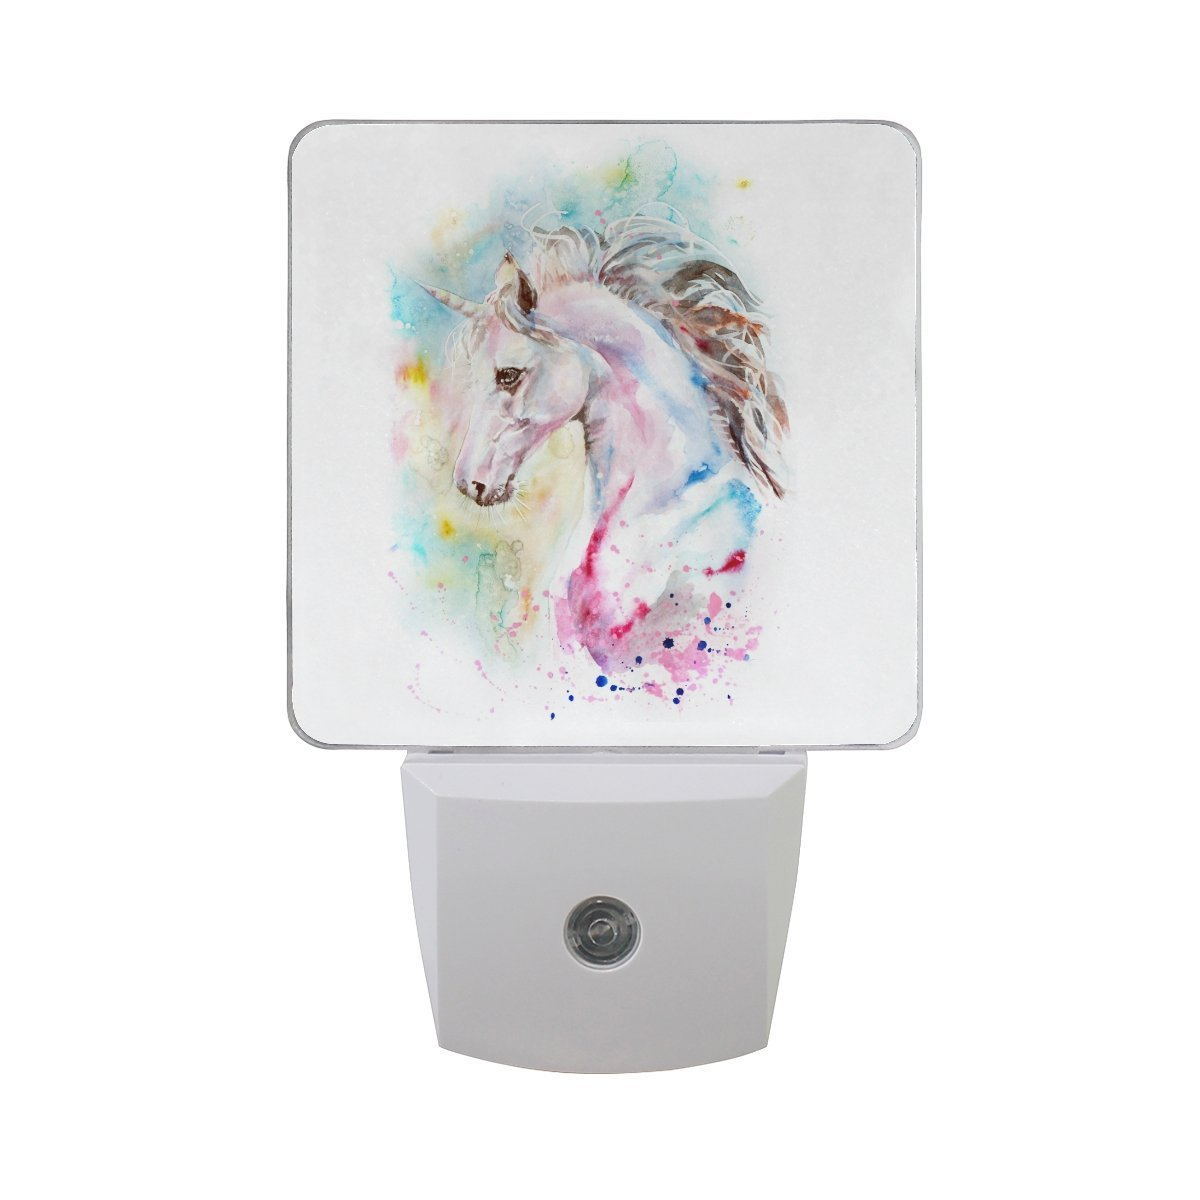 Naanle Set of 2 Unicorn In Colorful Painting On White Background Auto Sensor LED Dusk To Dawn Night Light Plug In Indoor for Adults